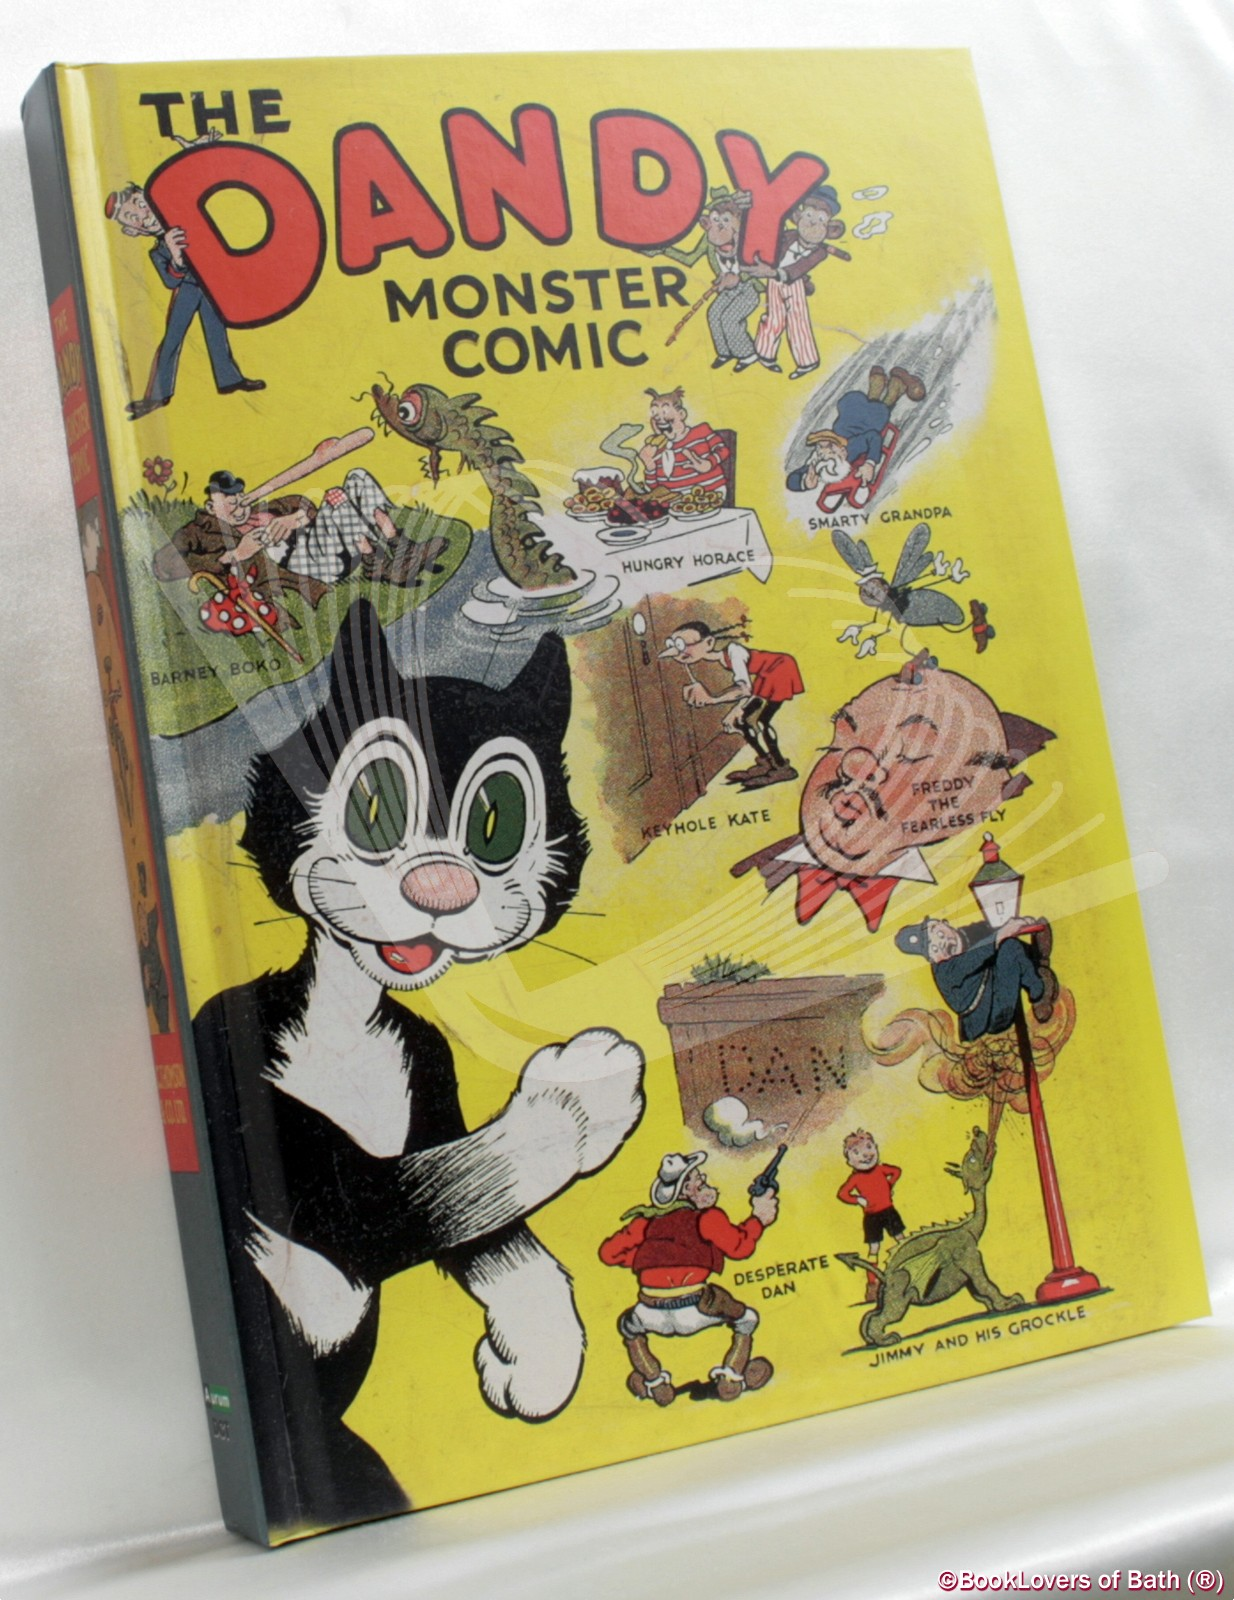 The Dandy Monster Comic - Anon.